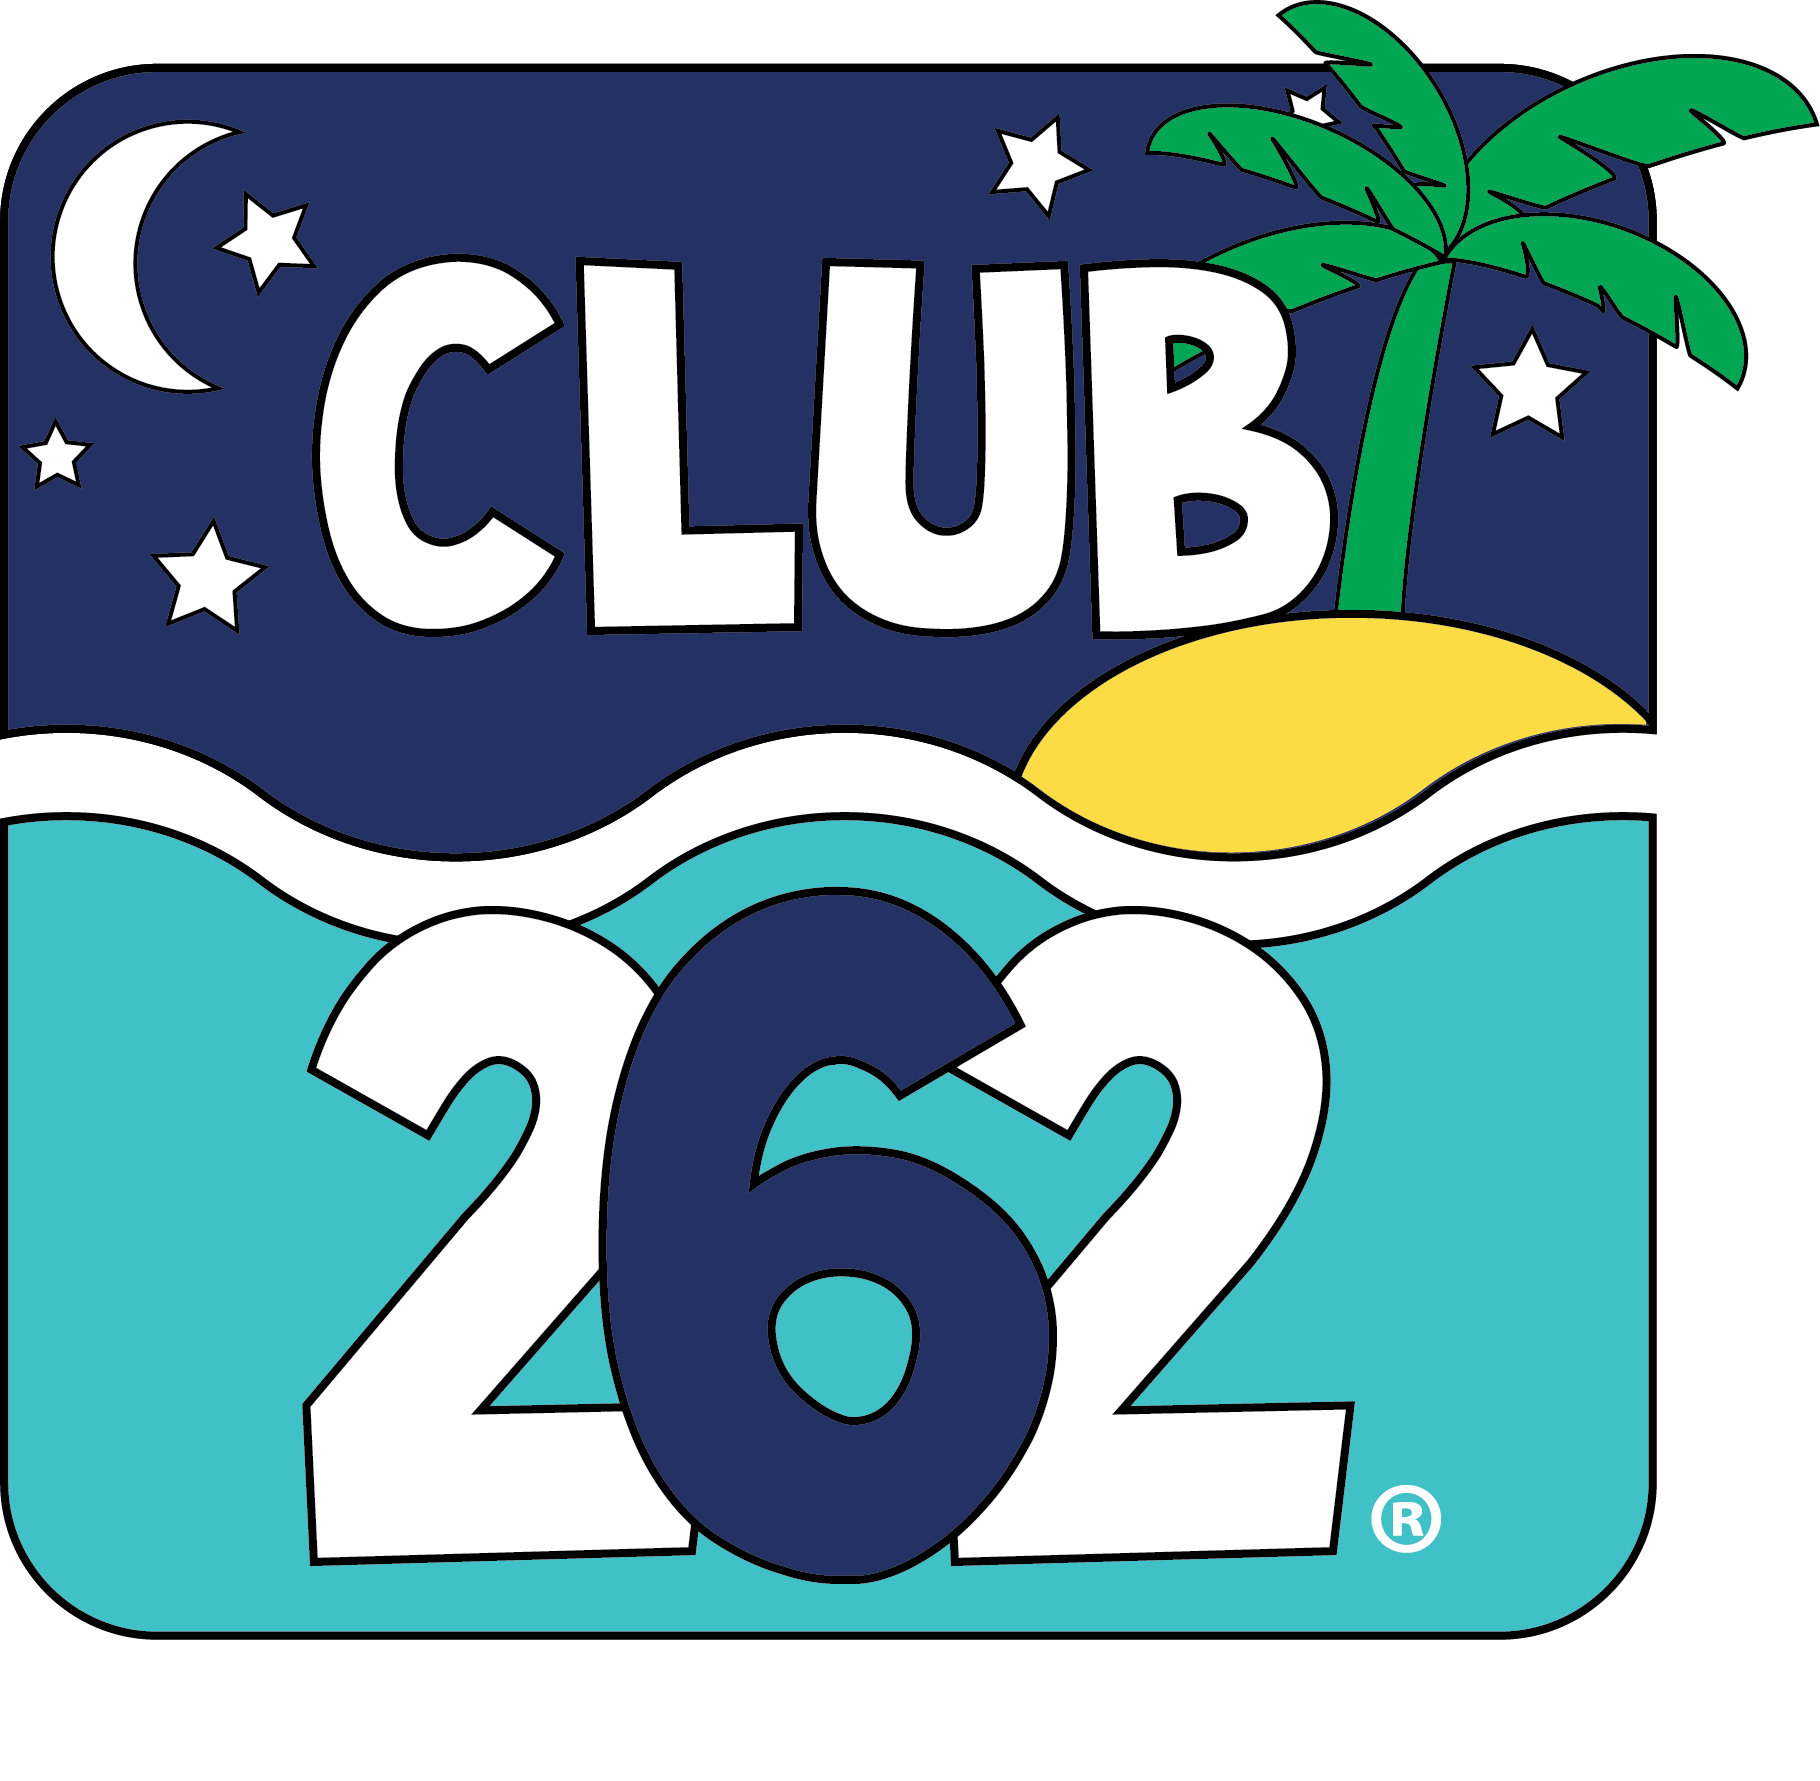 An All-New Club262 Summer Challenge!